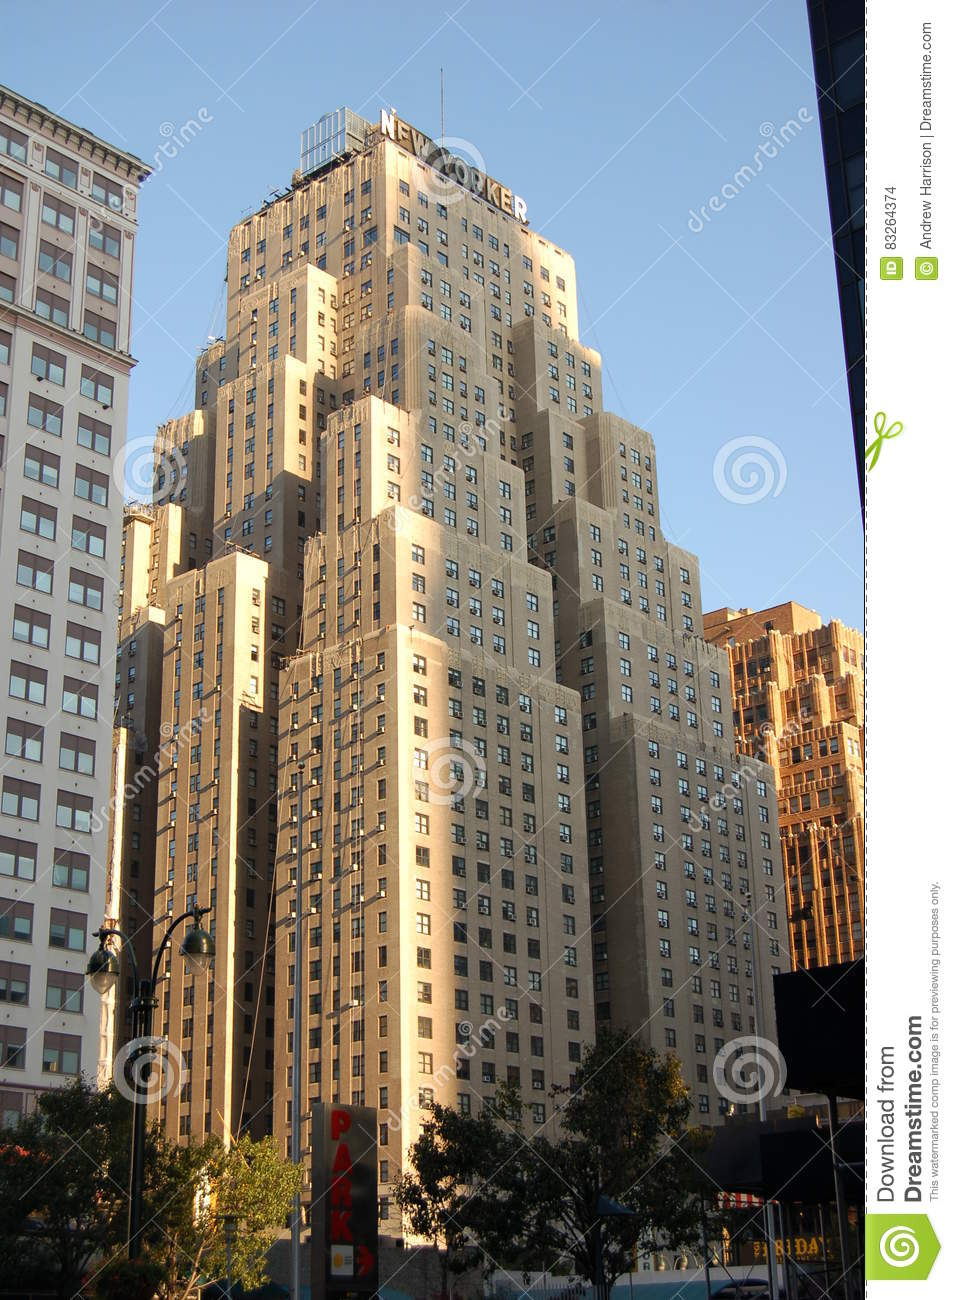 The new yorker hotel new york usa editorial stock image - Hotel madison square garden new york ...